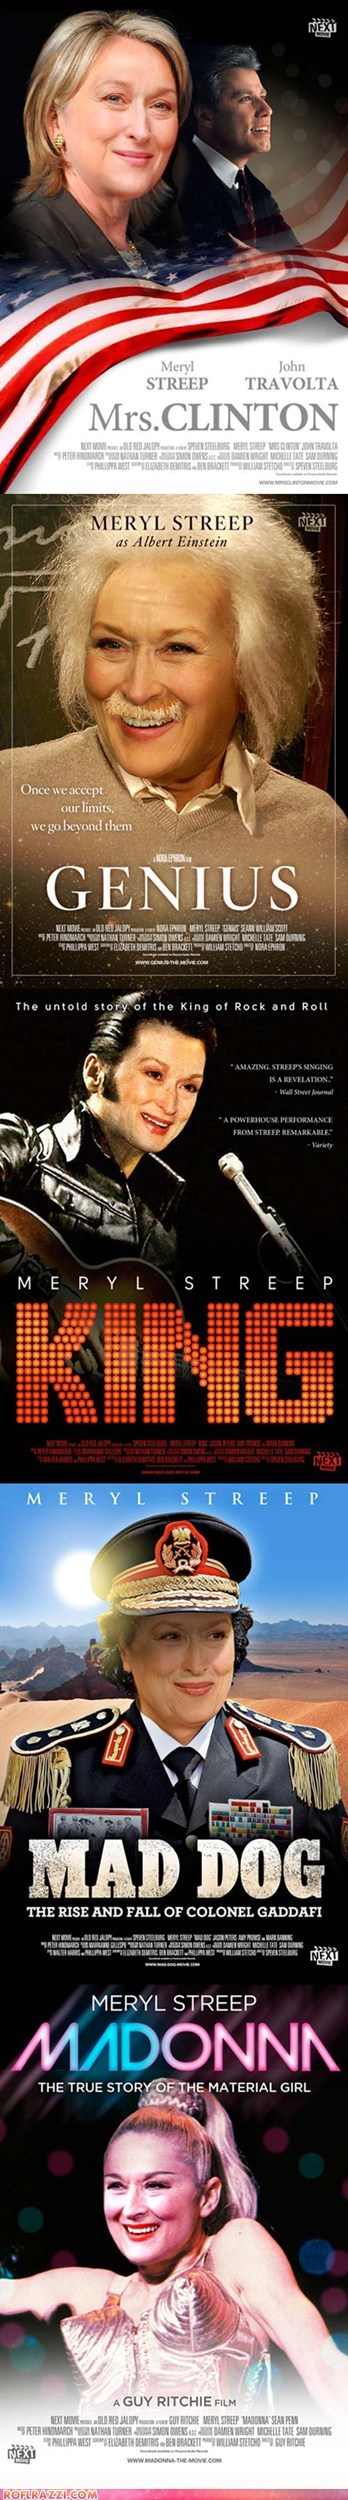 actor celeb funny Meryl Streep Movie poster shoop - 5887843328